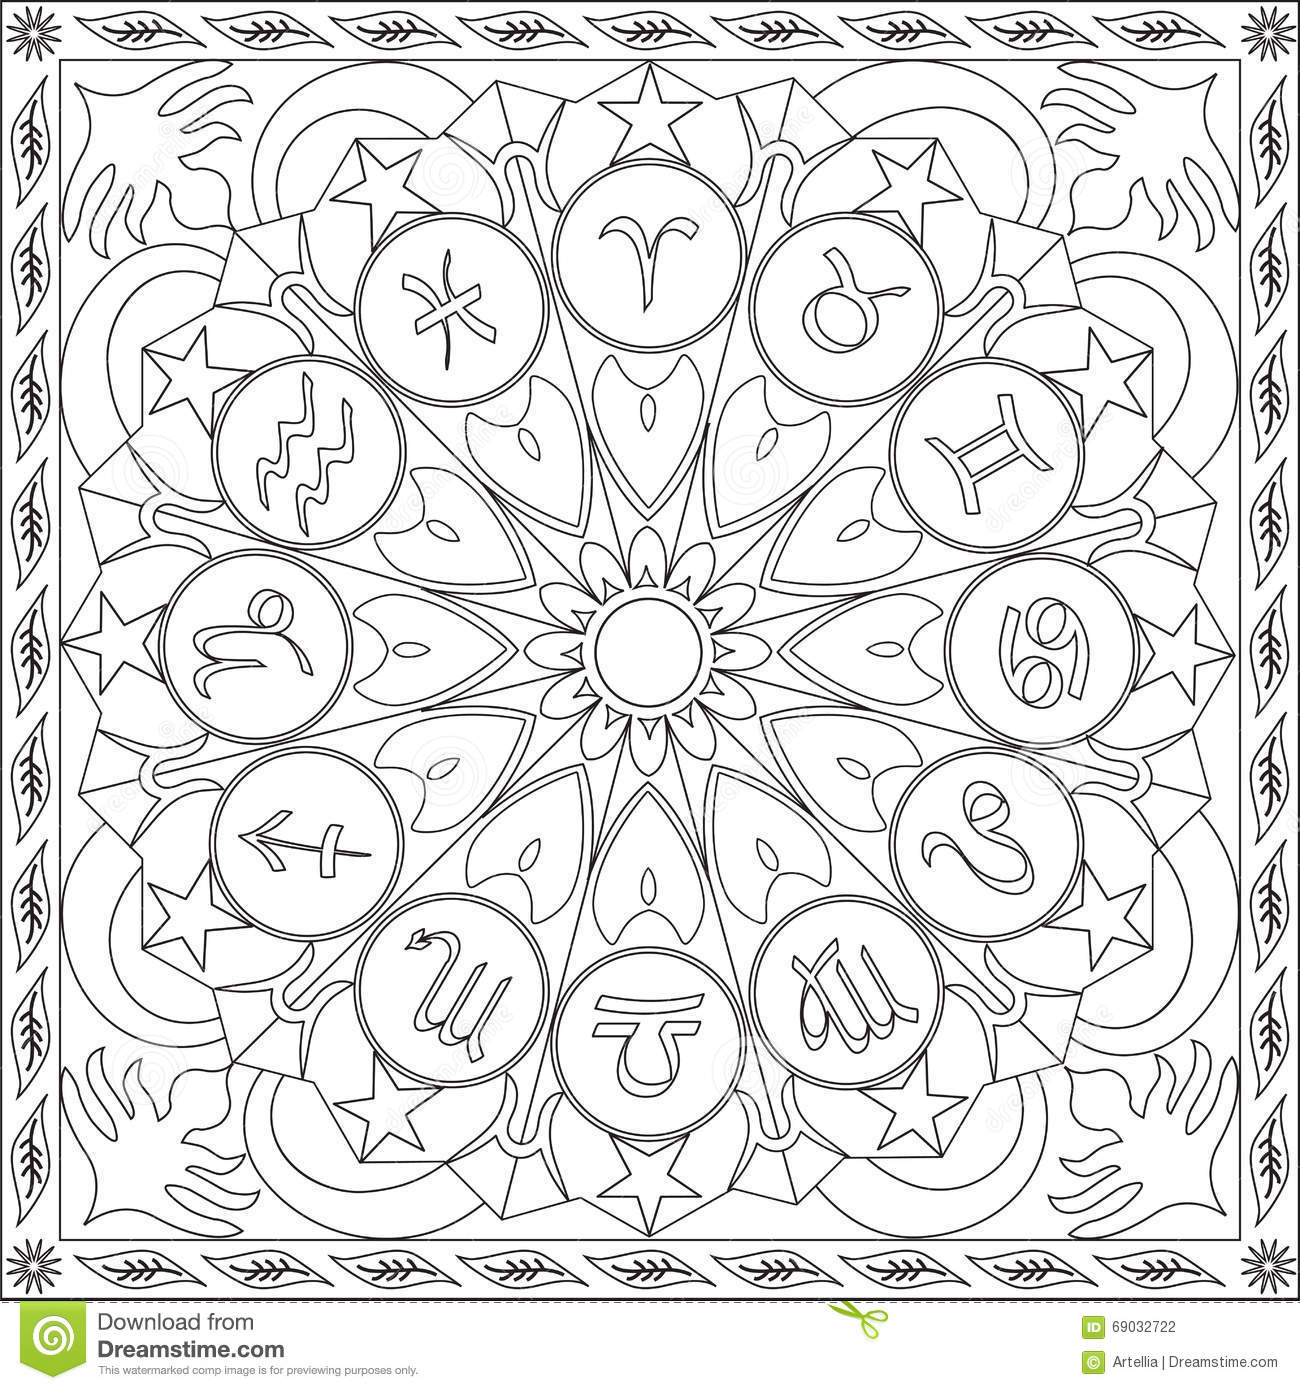 Astrology Coloring Pages Miakenasnet